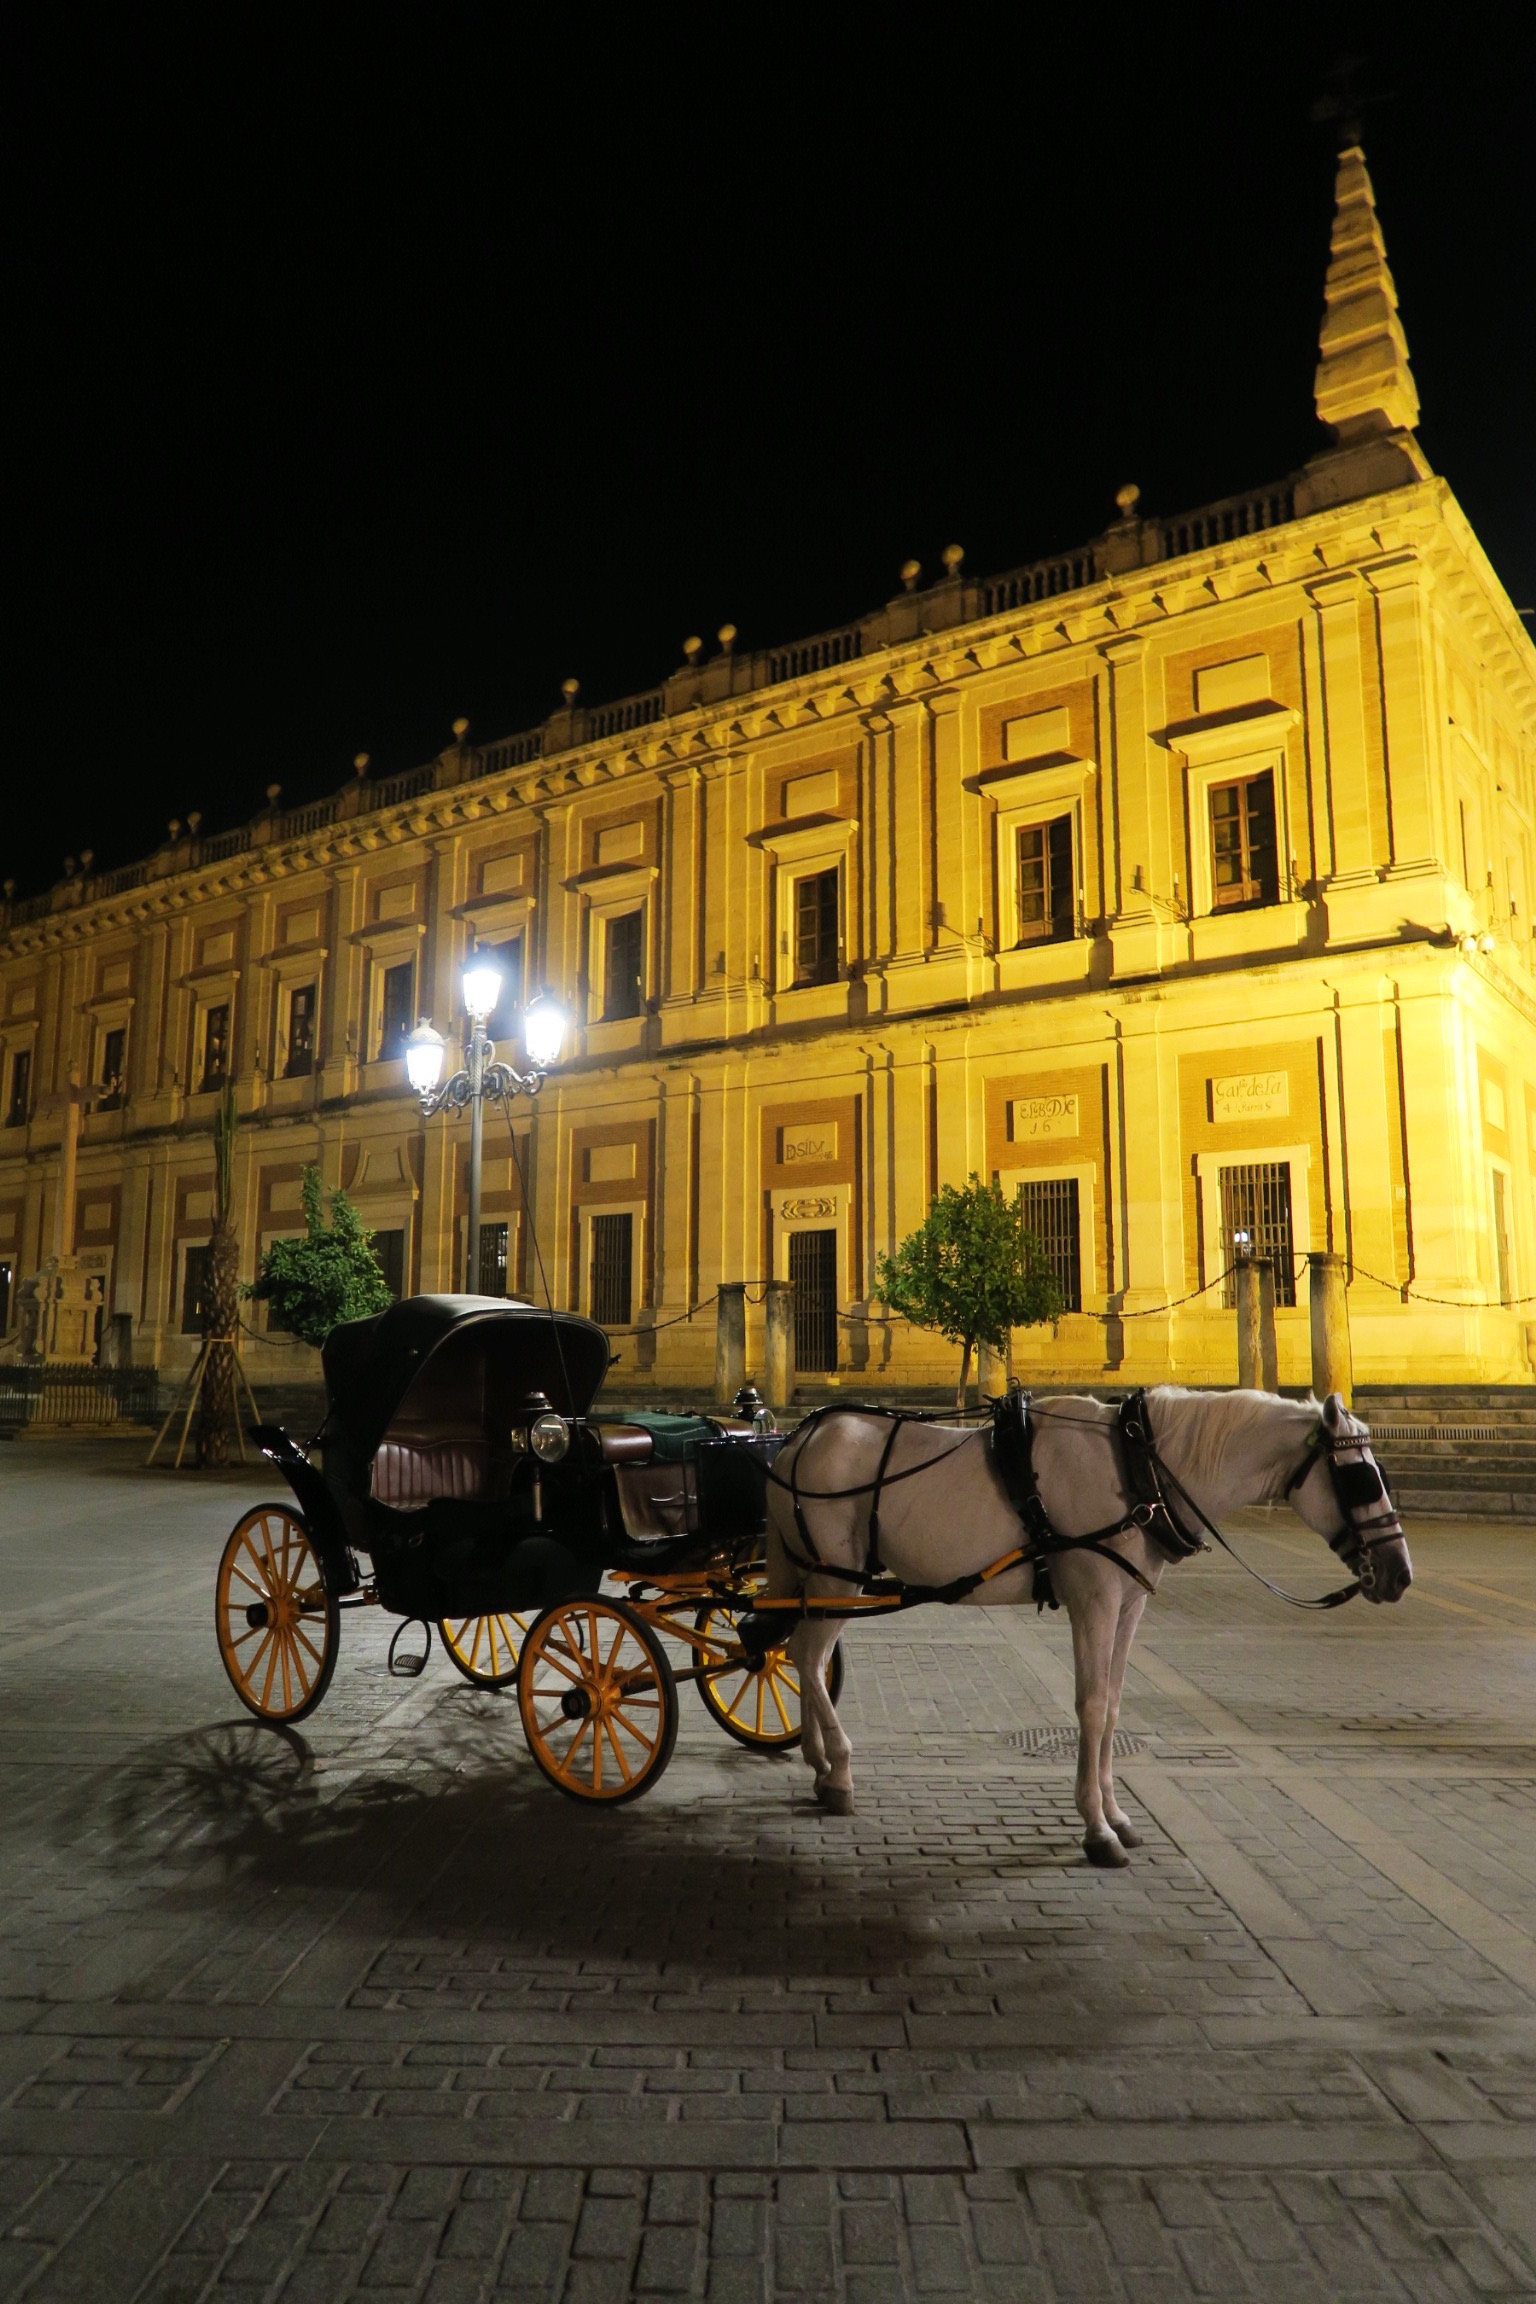 Sevilla horse and carriage from Sincerely Yours Susie Seville blog post. Photo credit Susie Cormack Bruce.JPG